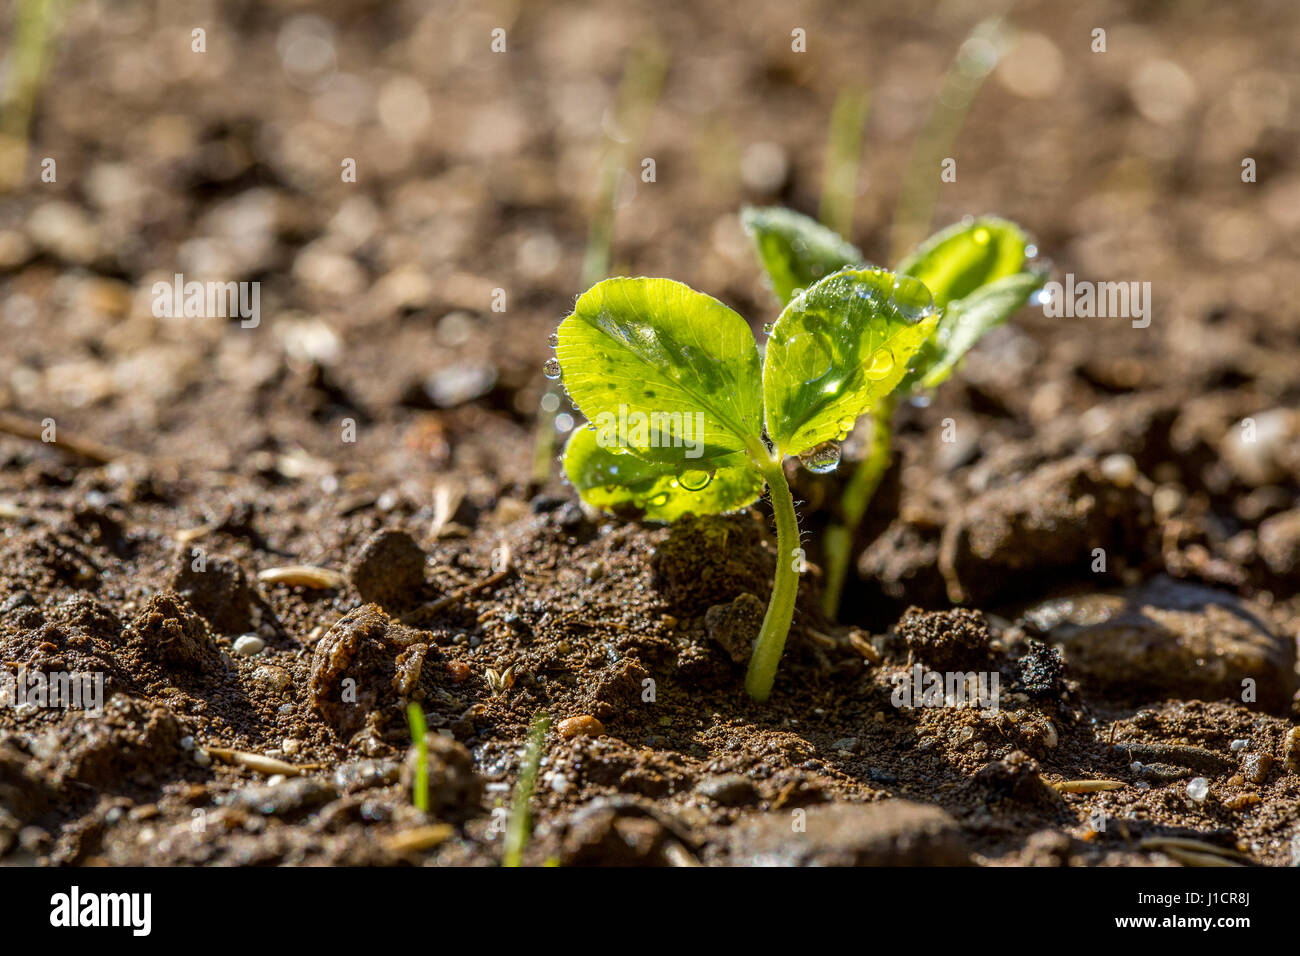 Clover Sprout Stock Photos & Clover Sprout Stock Images - Alamy